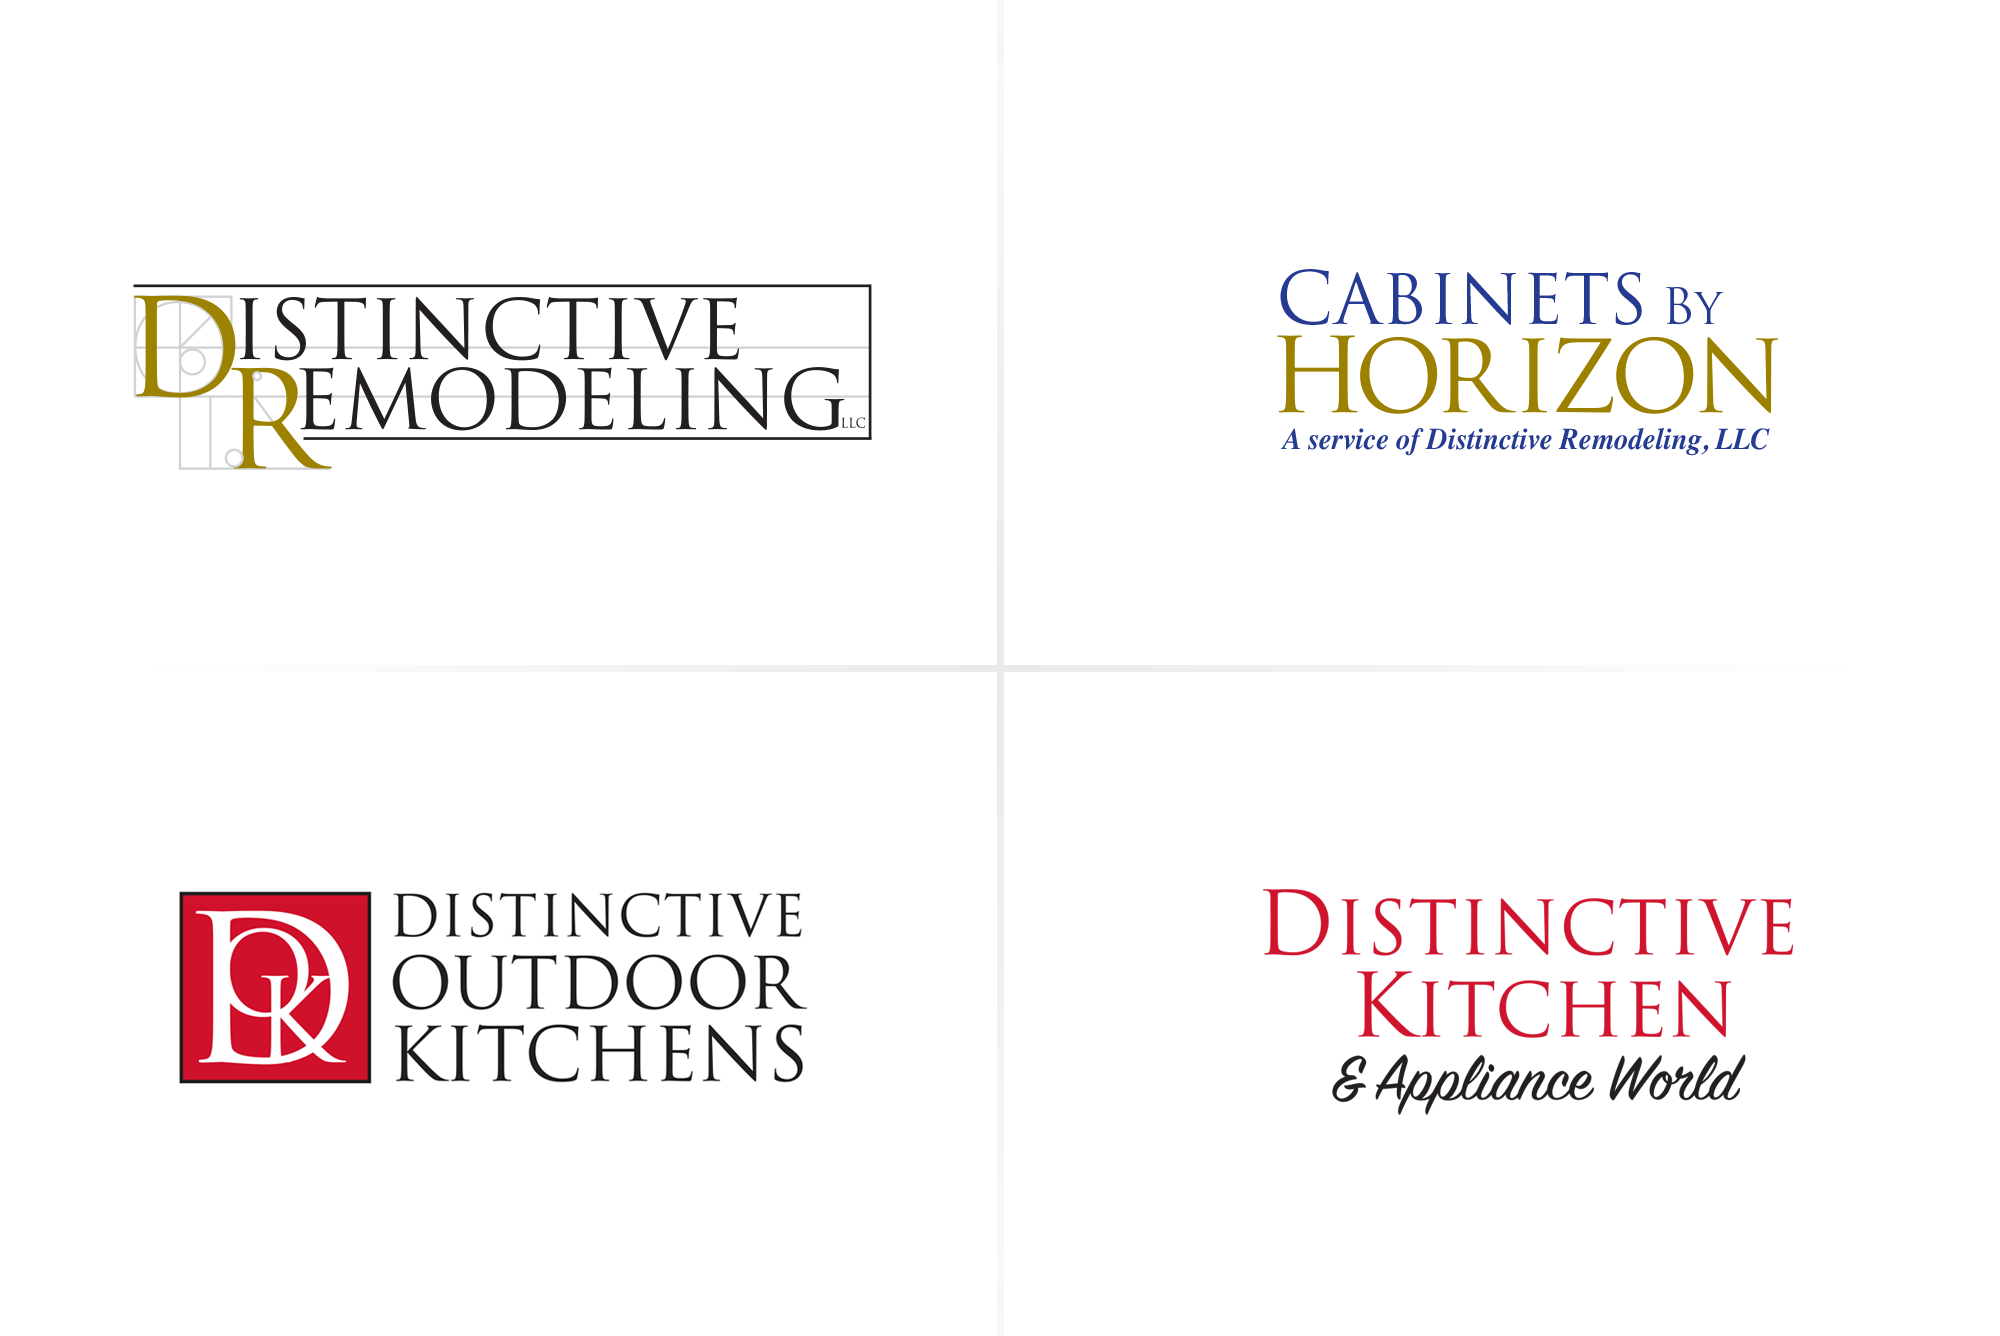 distinctive remodeling family of companies